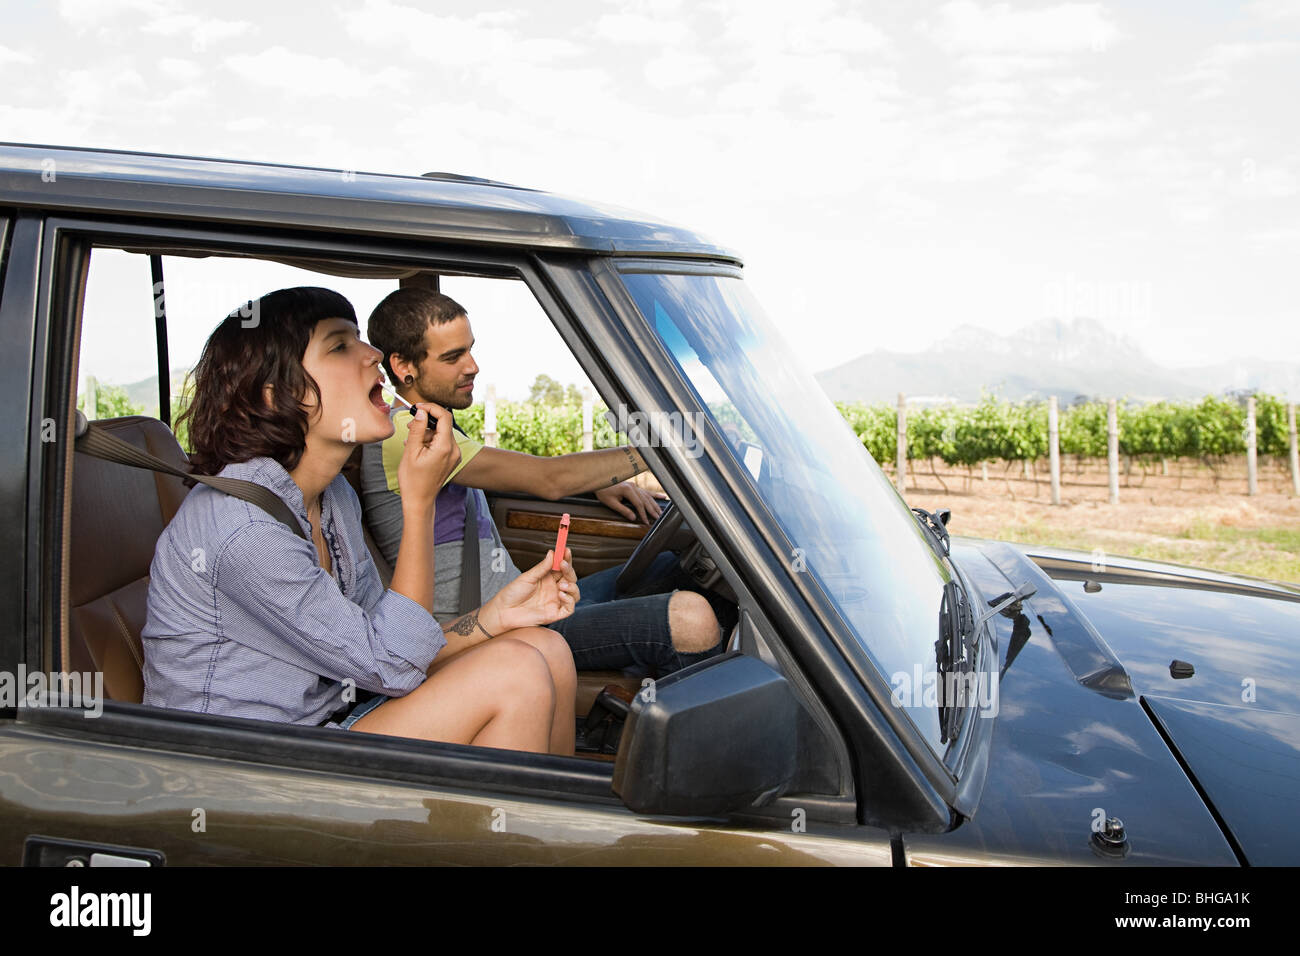 Woman putting on lipstick in vehicle - Stock Image